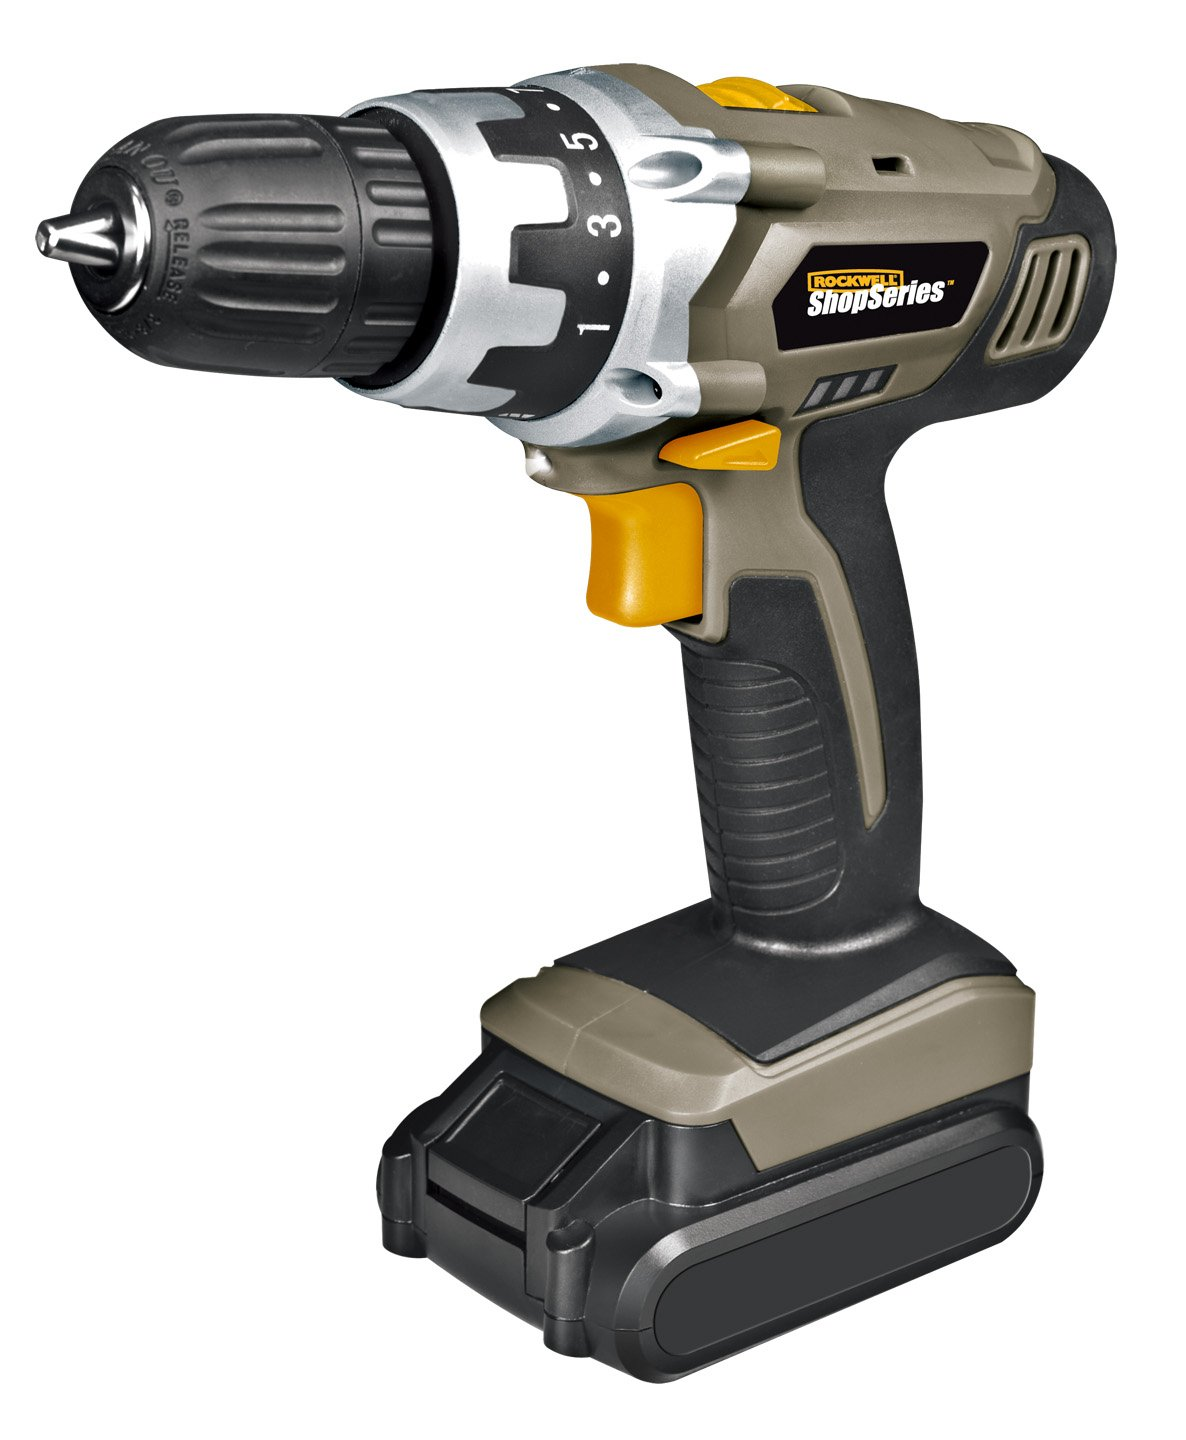 ShopSeries SS2800 3//8 18-Volt Lithium-Ion Cordless Drill//Driver Positec USA